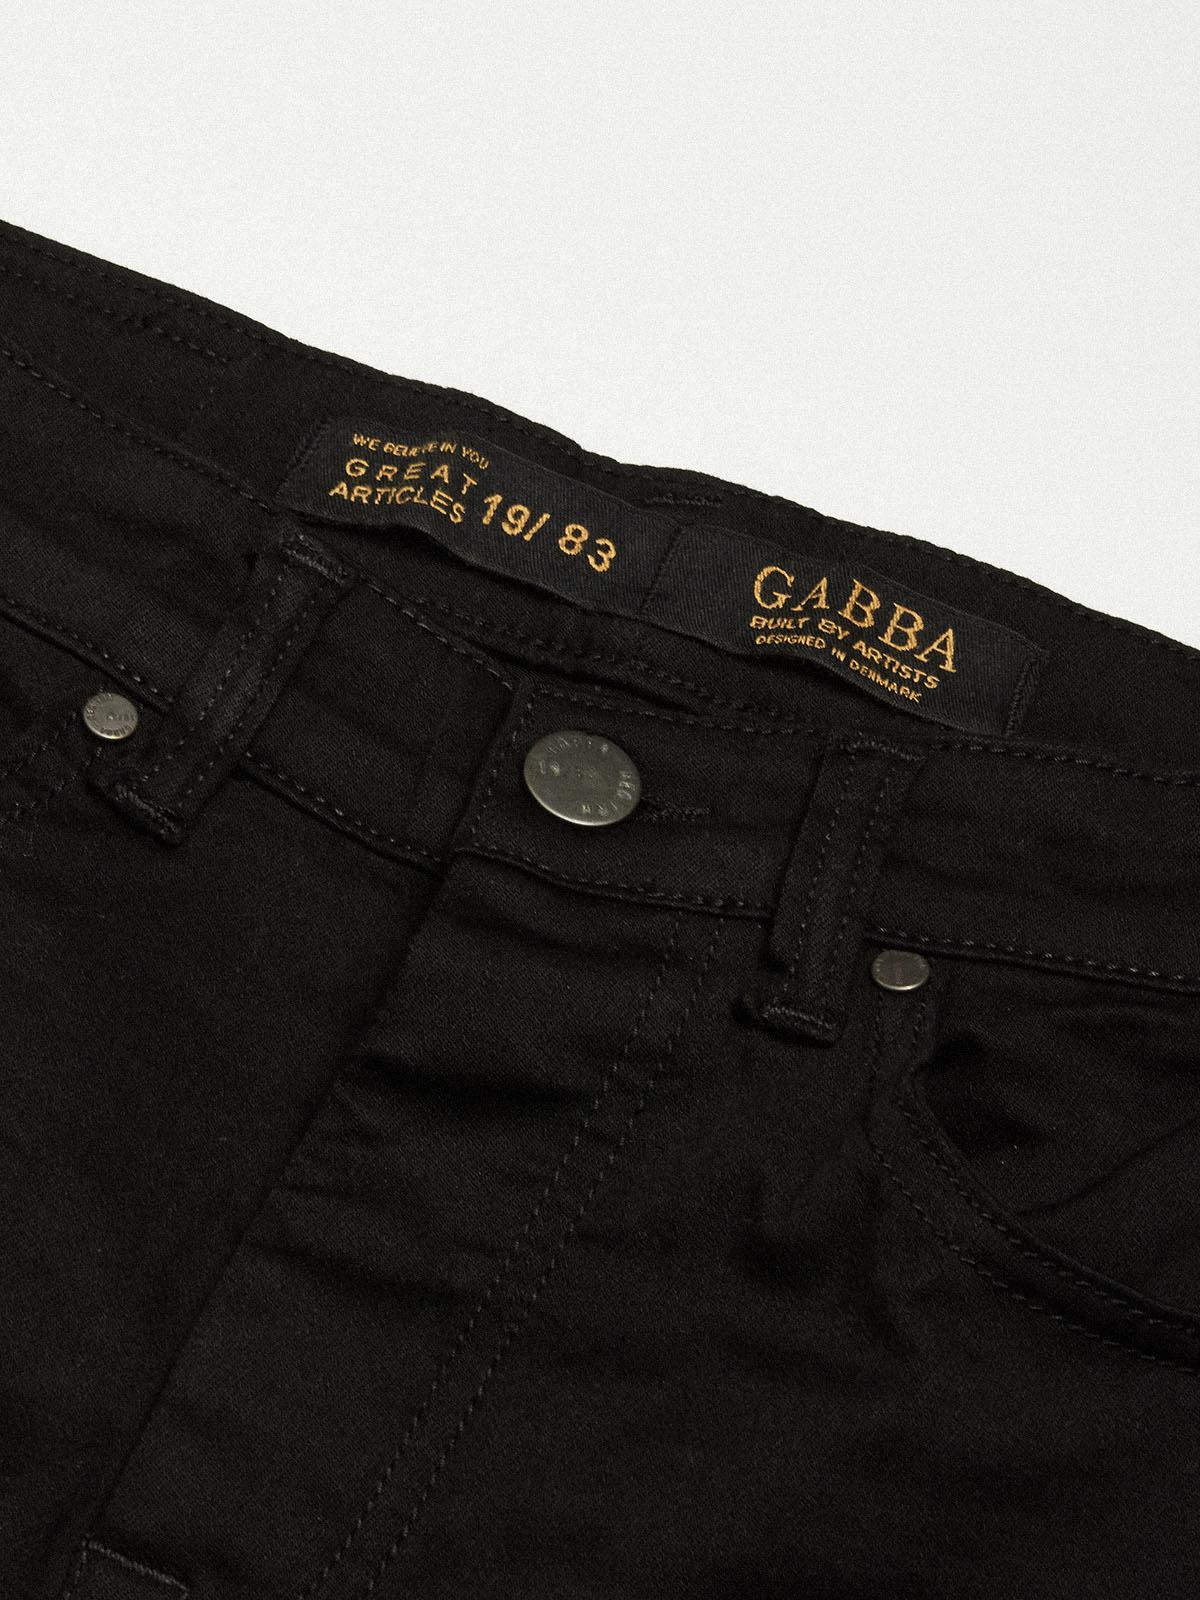 GABBA JEANS - Jones K1911 Black Jeans | Gate 36 Hobro